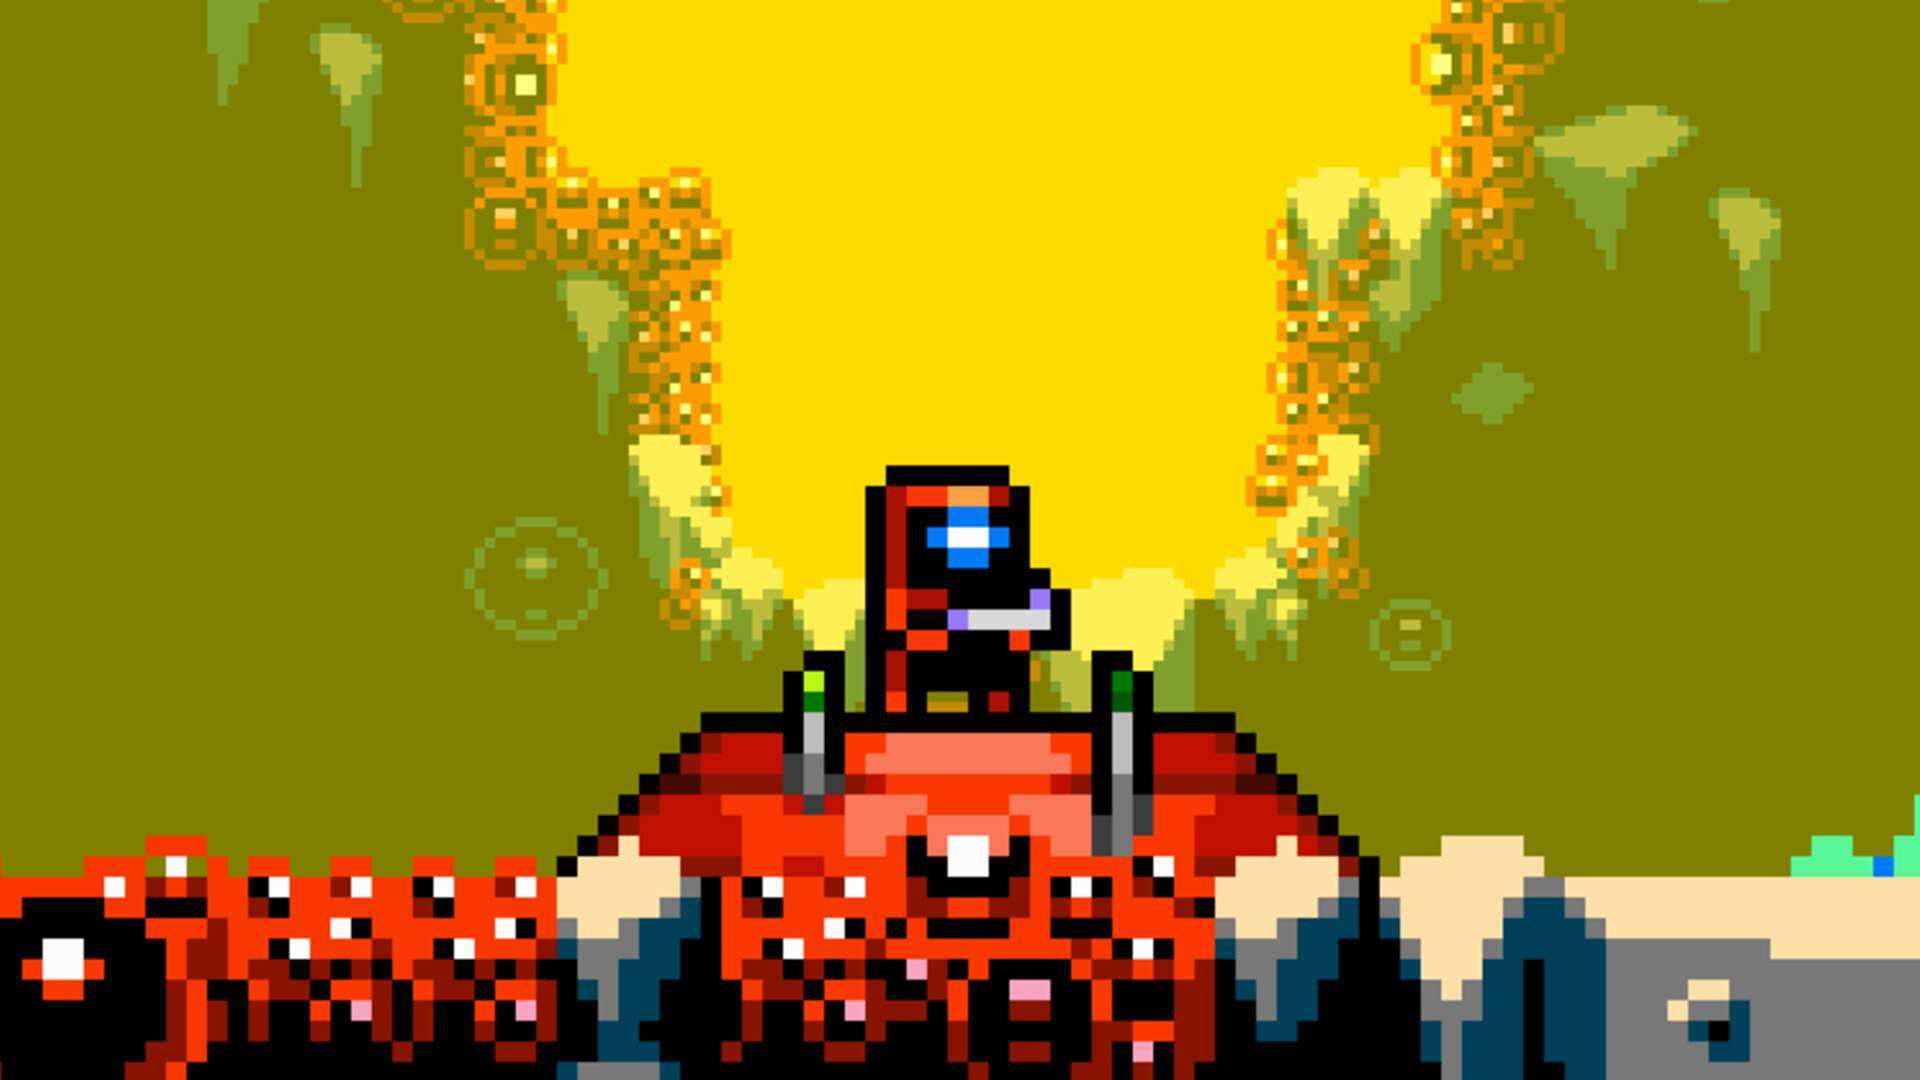 Xeodrifter, a Charming But Incomplete Sketch of a Game